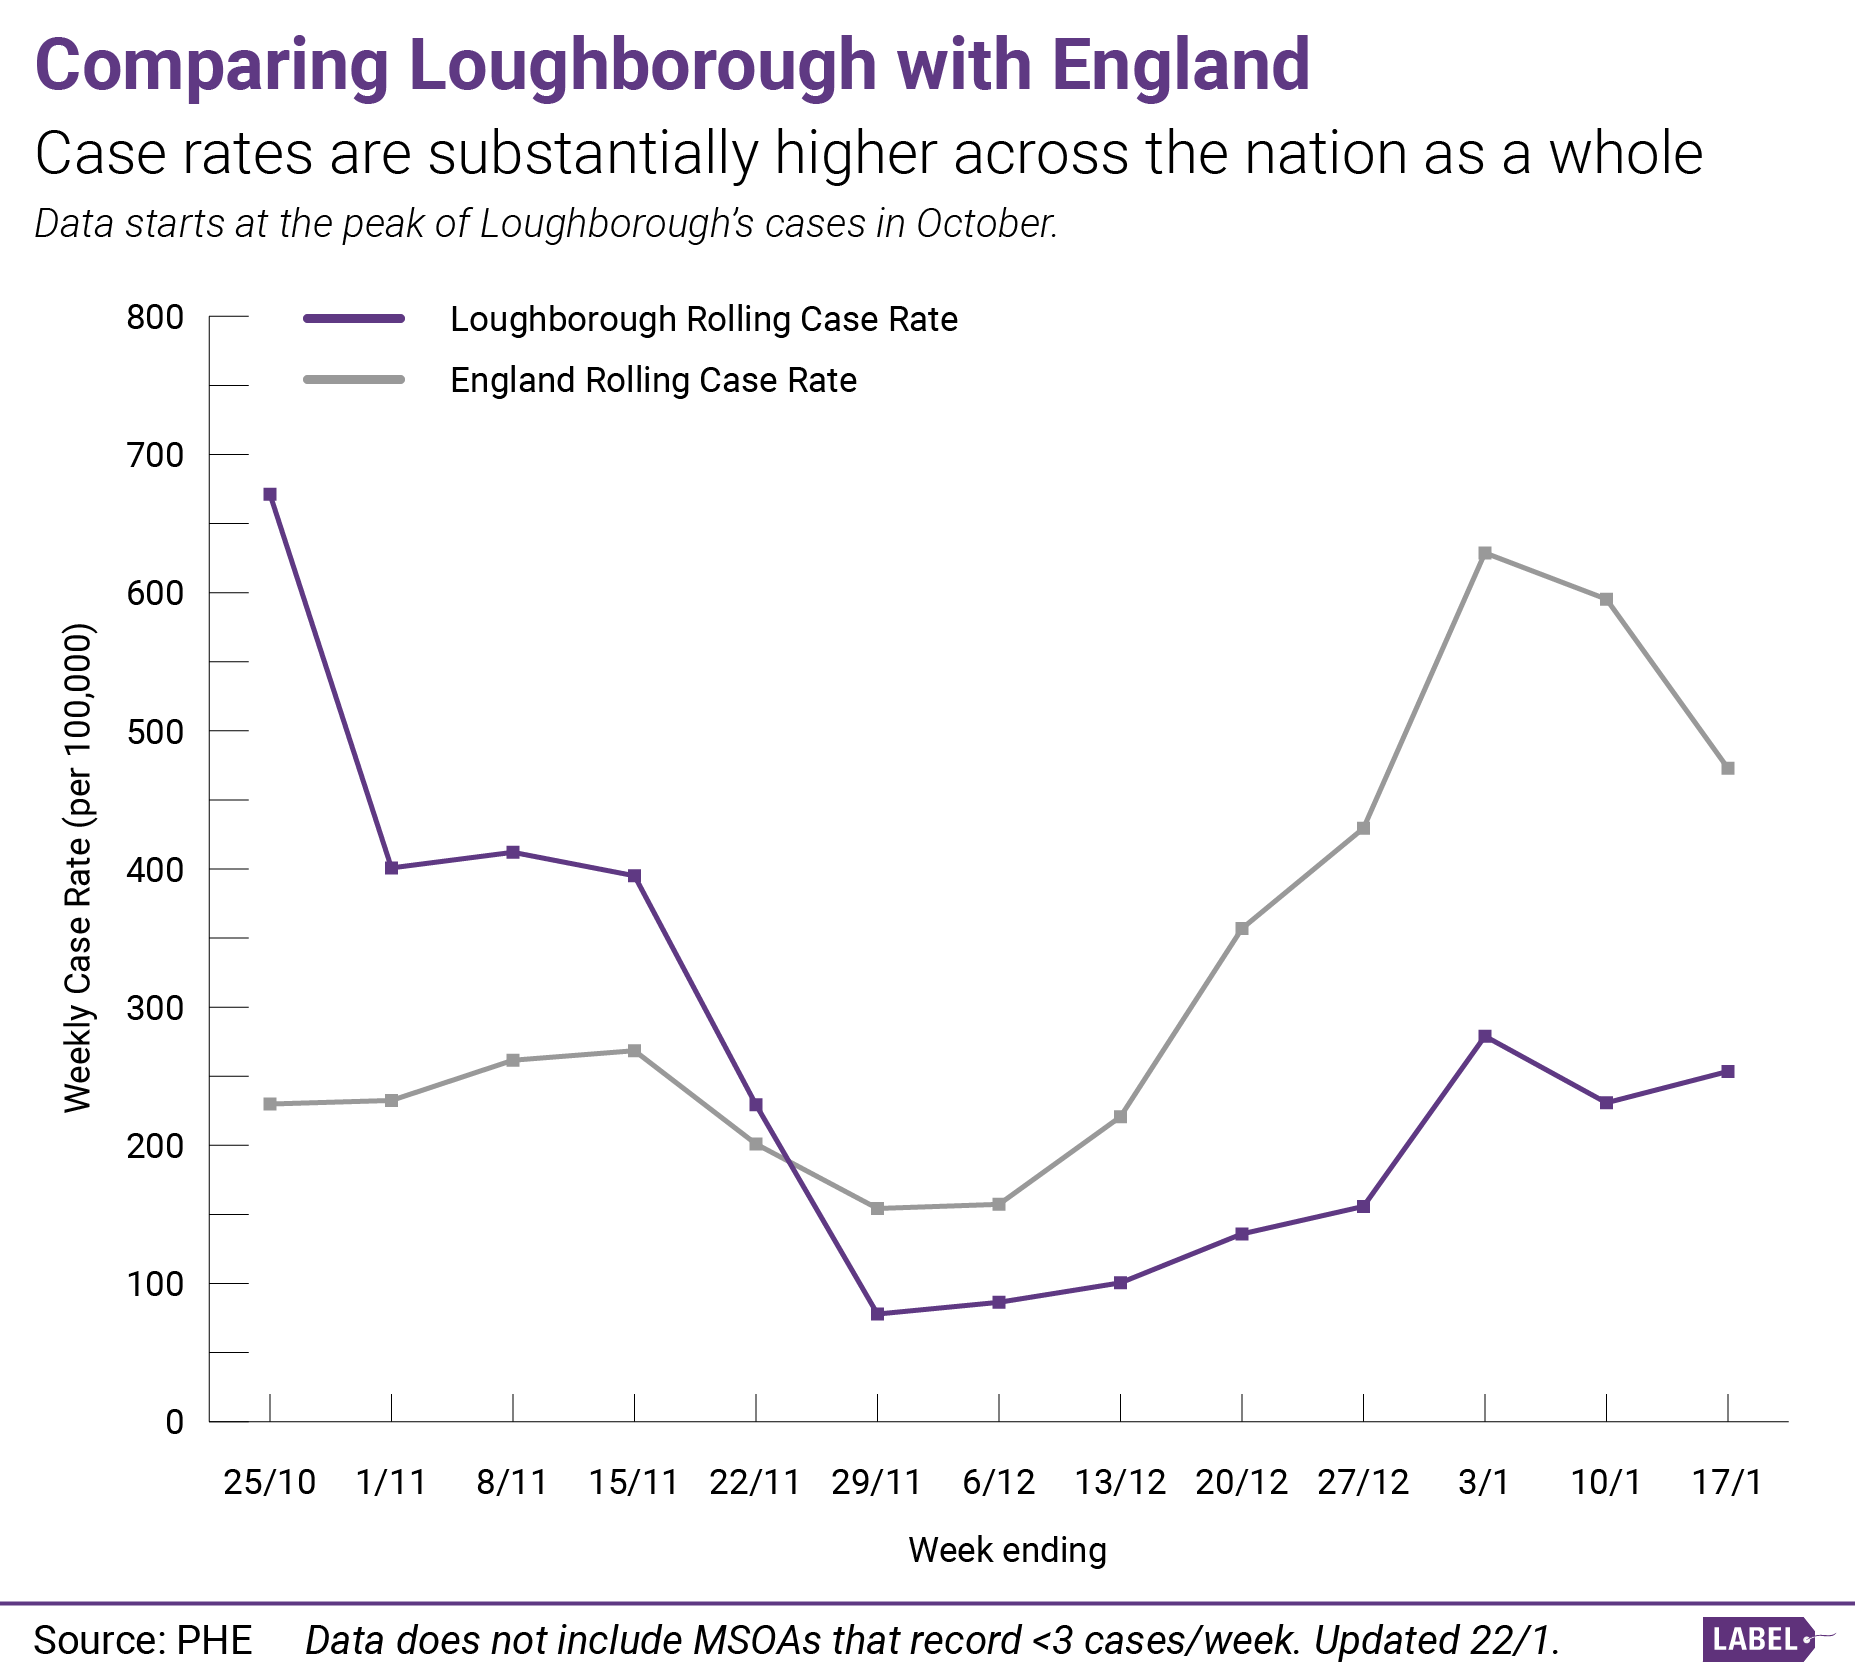 Graph showing the growth of COVID-19 cases in Loughborough compared to England as a whole